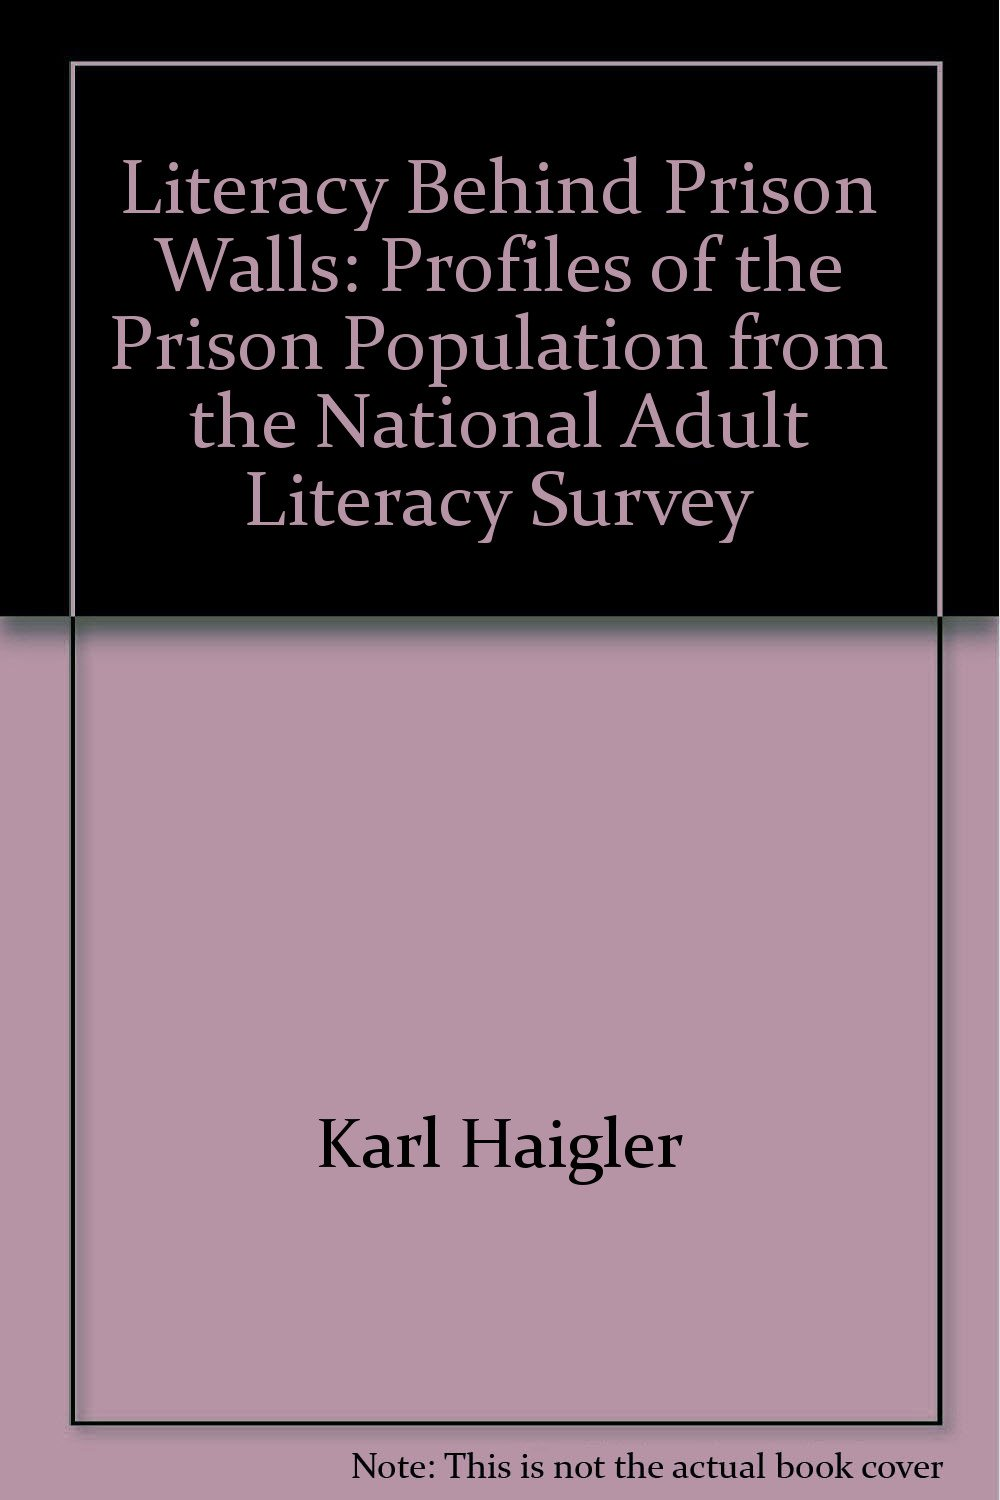 Literacy behind prison walls: Profiles of the prison population from the National  Adult Literacy Survey Paperback – 1994